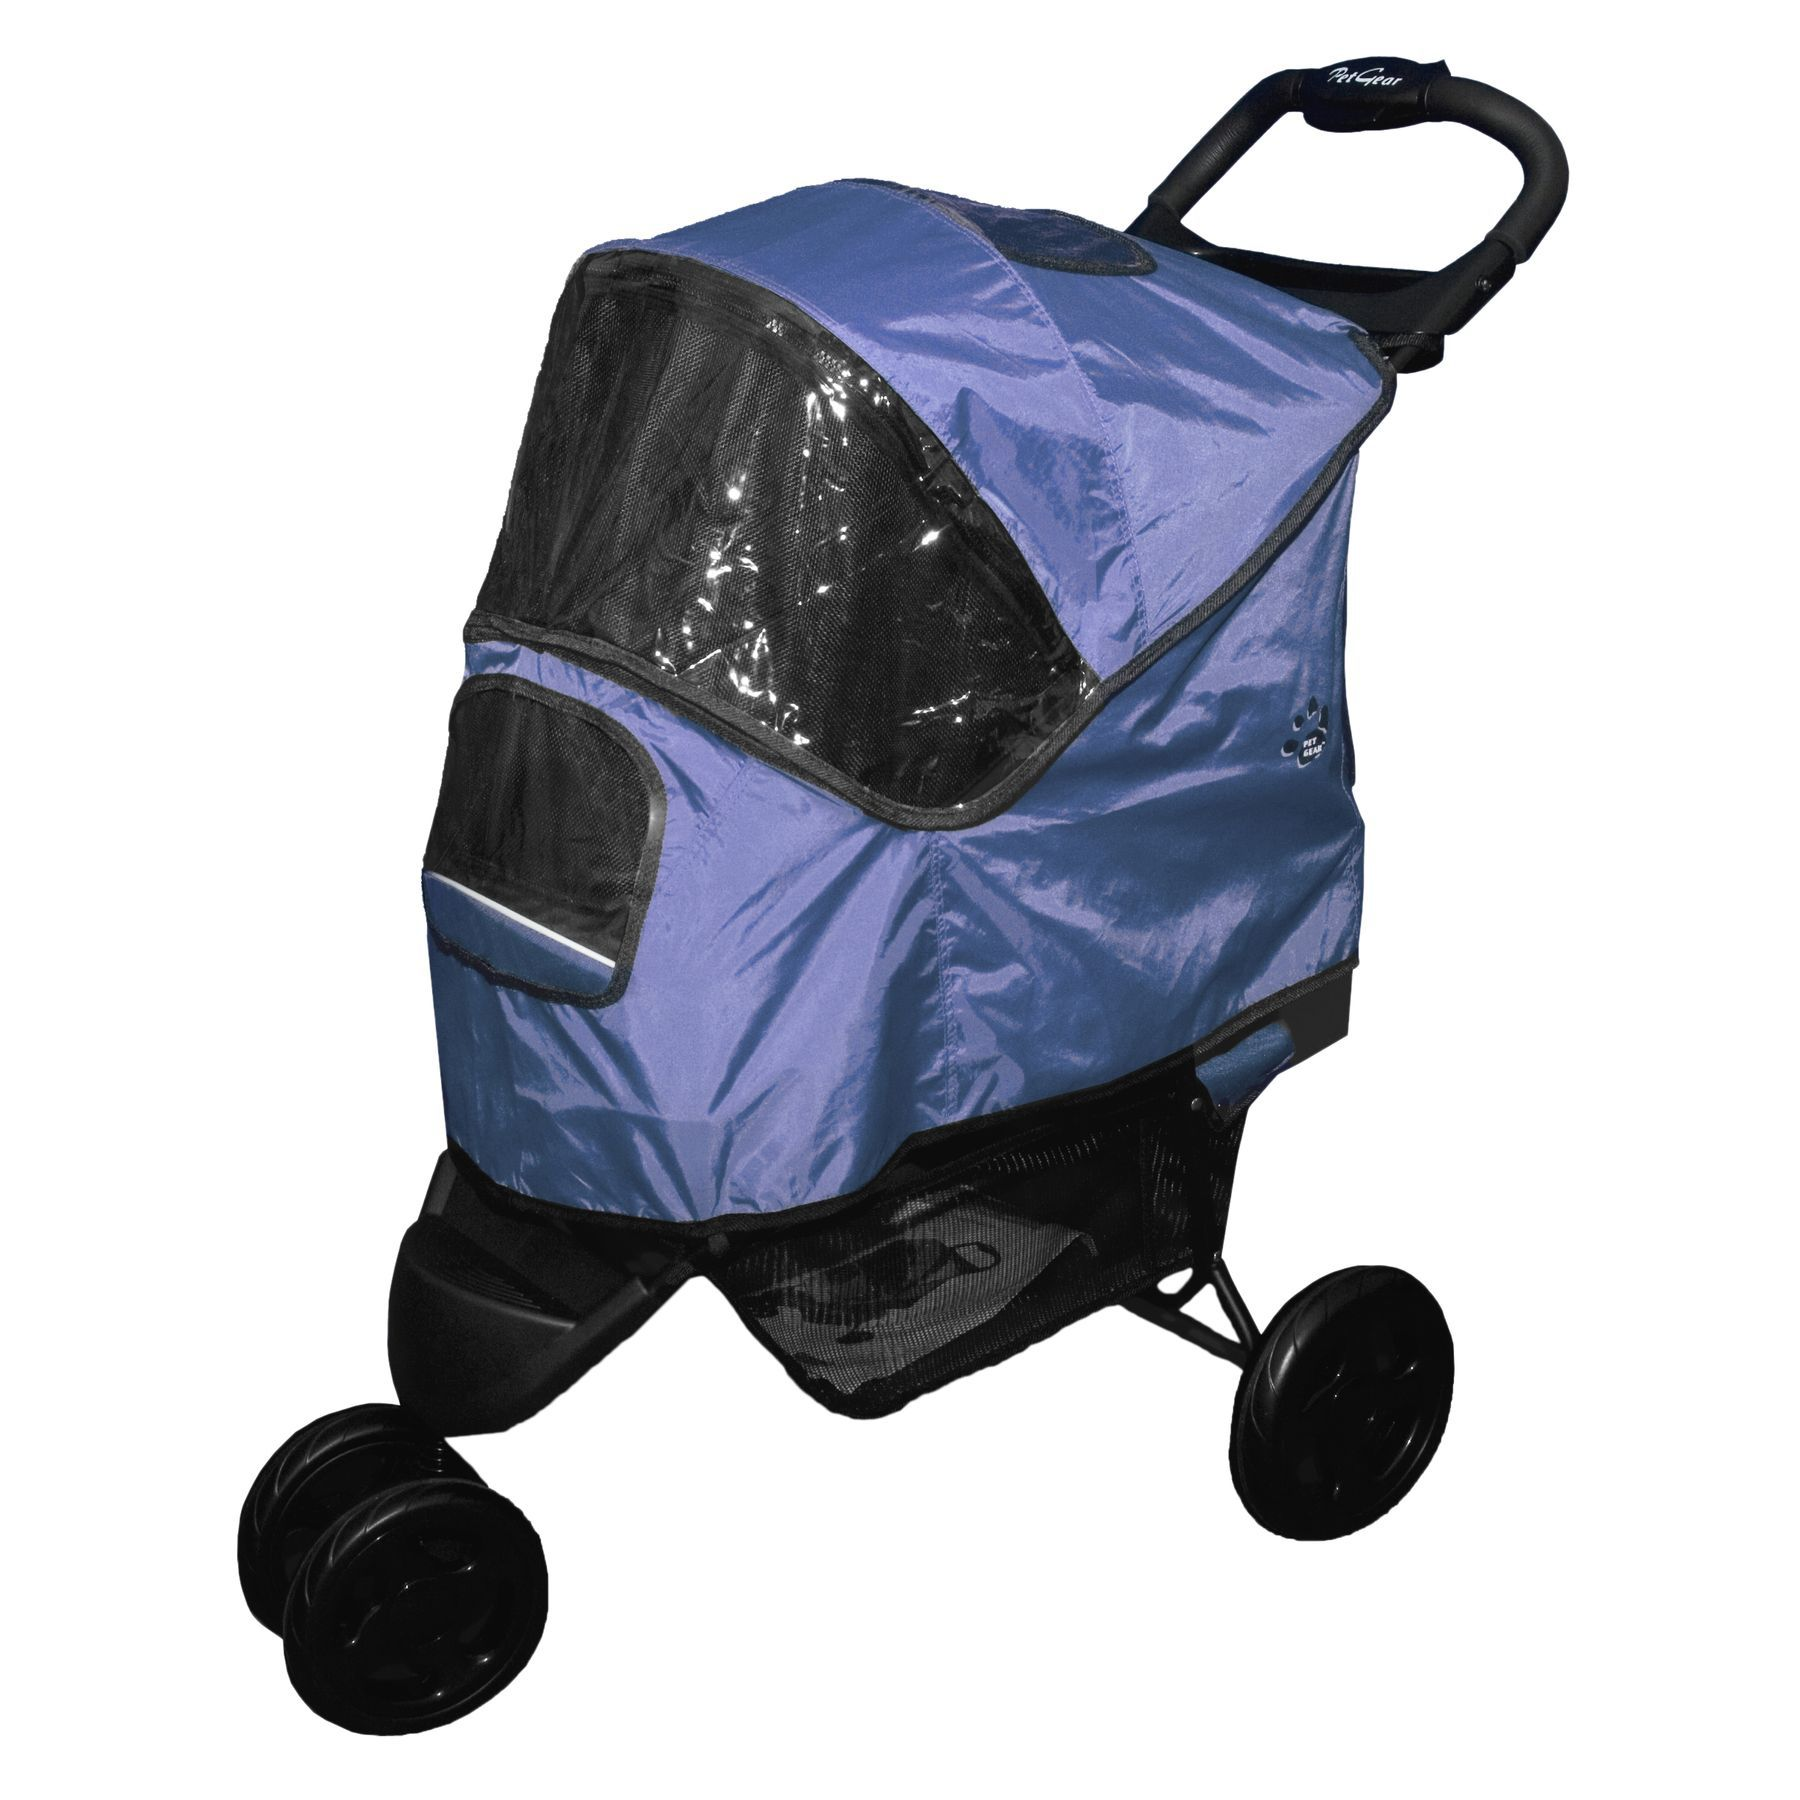 Weather Cover for Pet Gear Sportster pet stroller